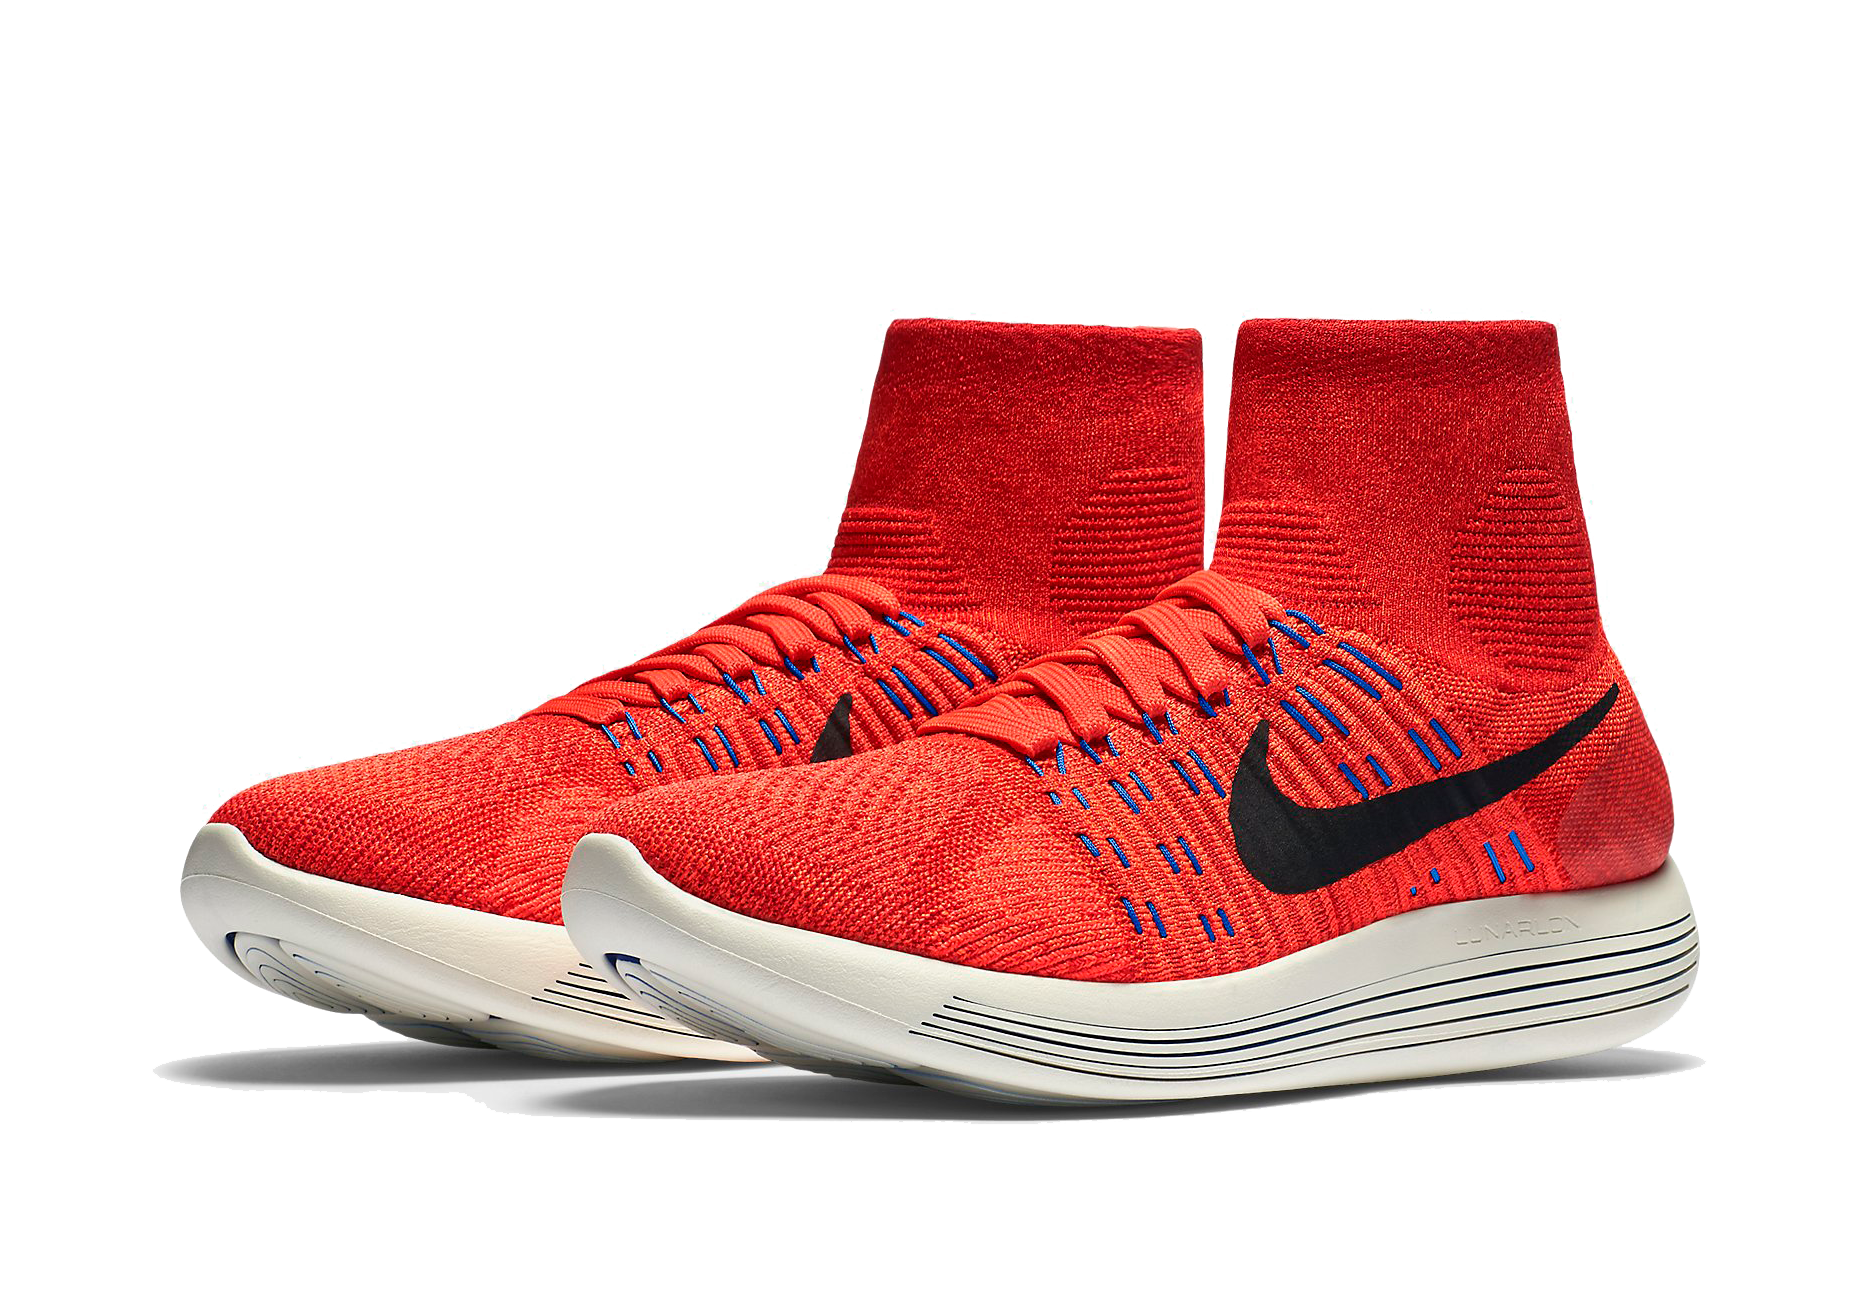 Nike LUNAREPIC FLYKNIT Review - Believe In The Run